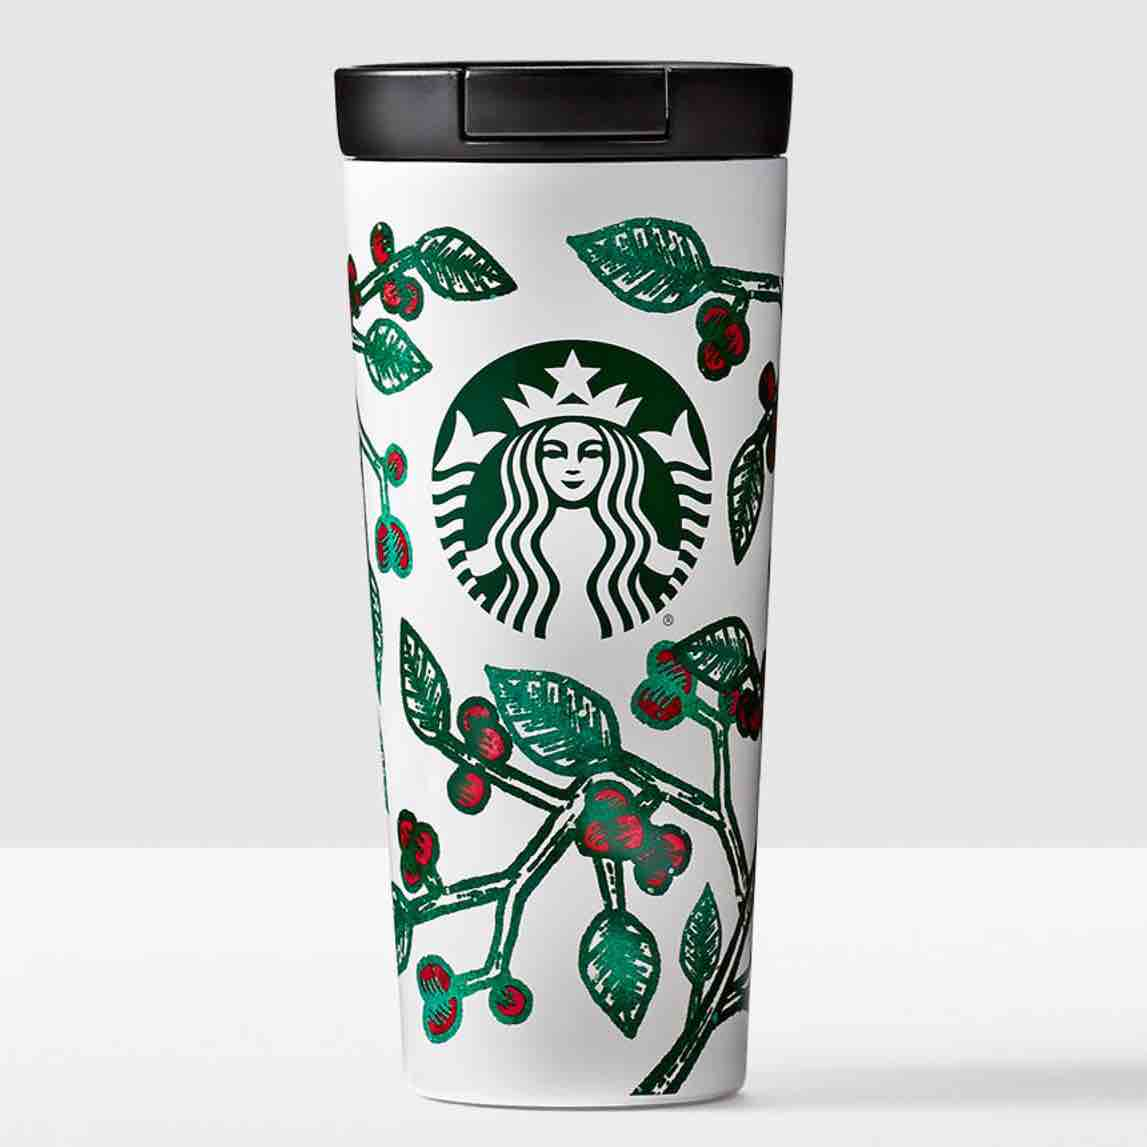 starbucks-coffee-tea-refill-tumbler-printable-coupon